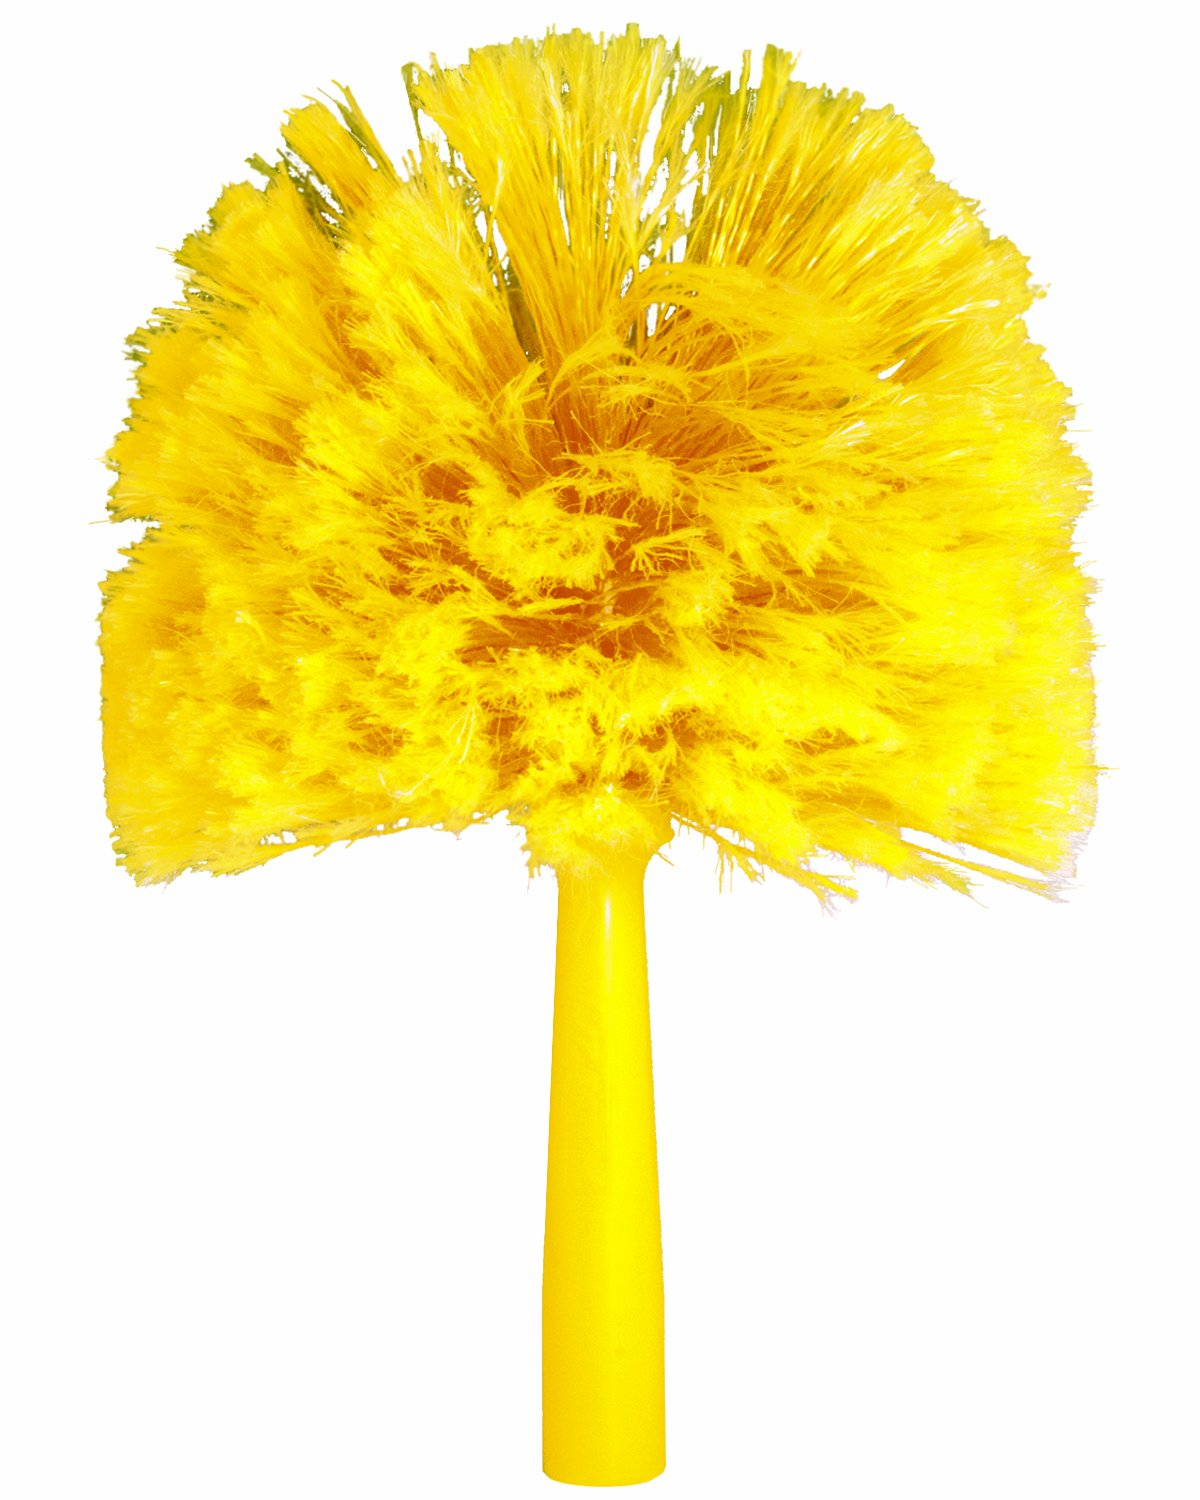 JT Eaton 1710YL Duster Replacement Head, 7-1/2'' Length x 7'' Width x 9'' Height, Yellow (Case of 12)